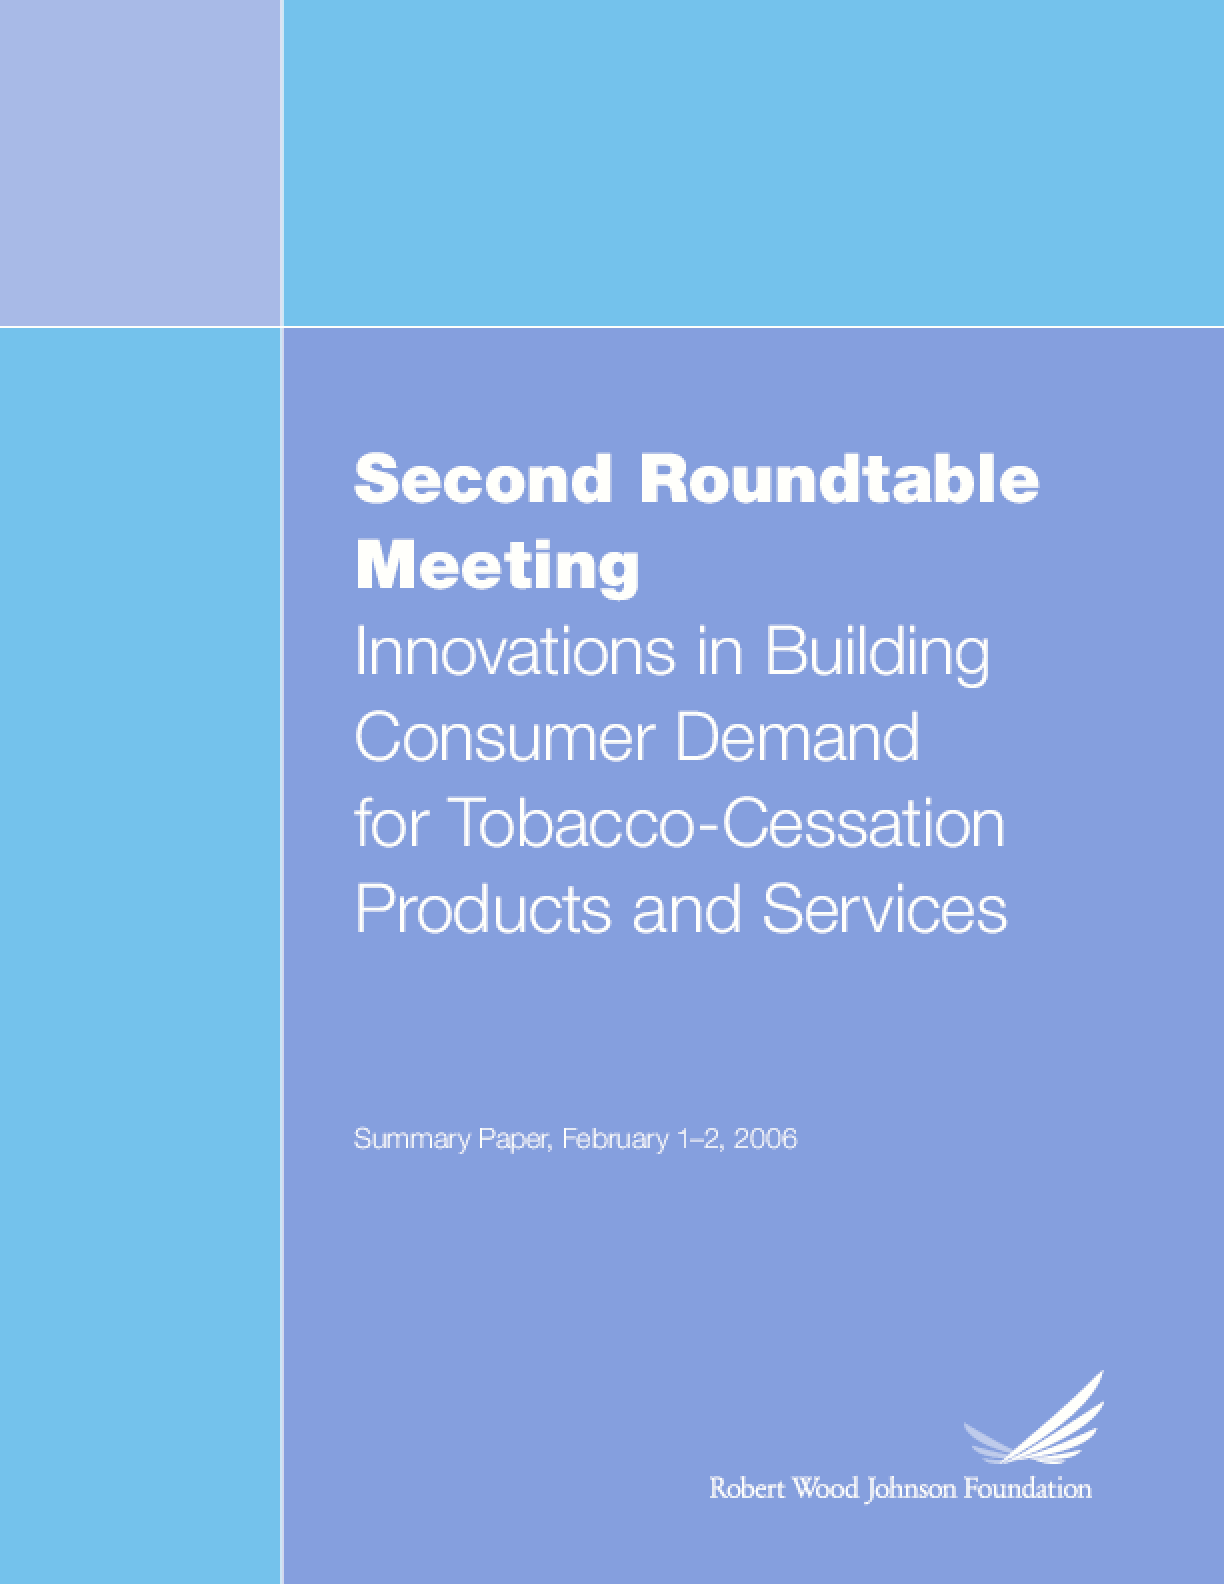 Second Roundtable Meeting: Innovations in Building Consumer Demand for Tobacco-Cessation Products and Services